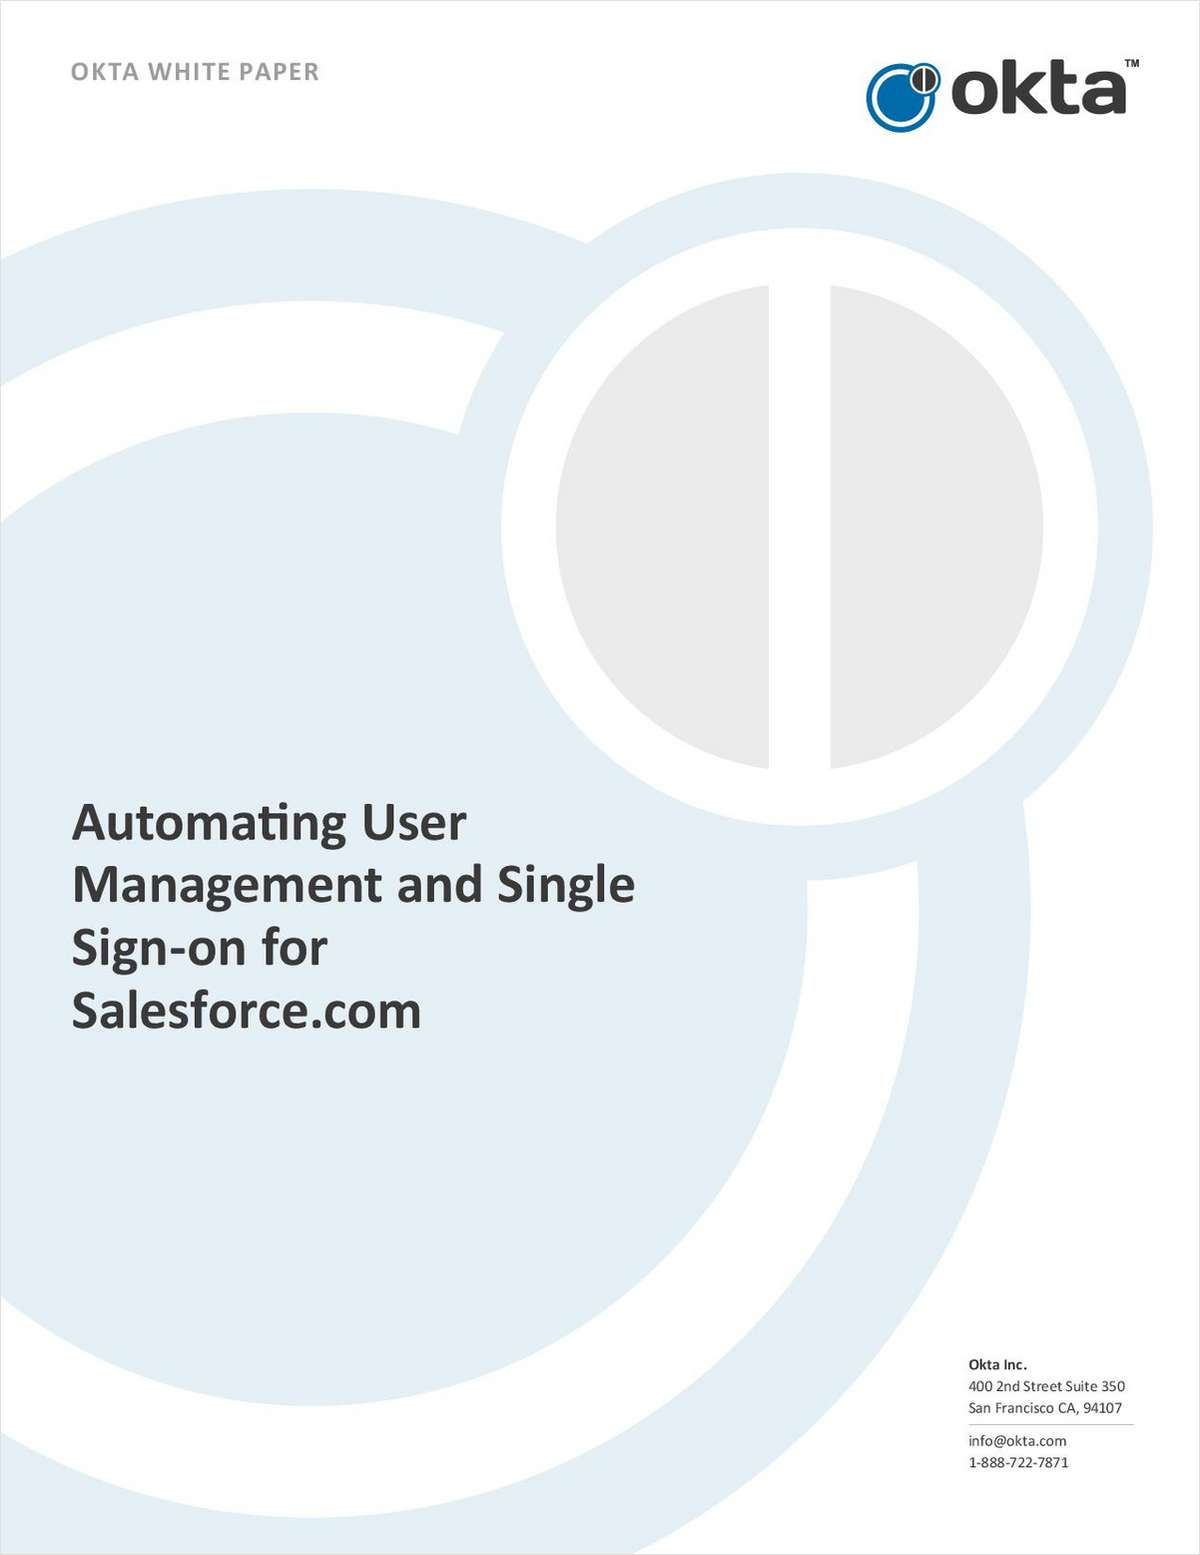 Automating User Management and Single Sign-on for Salesforce.com